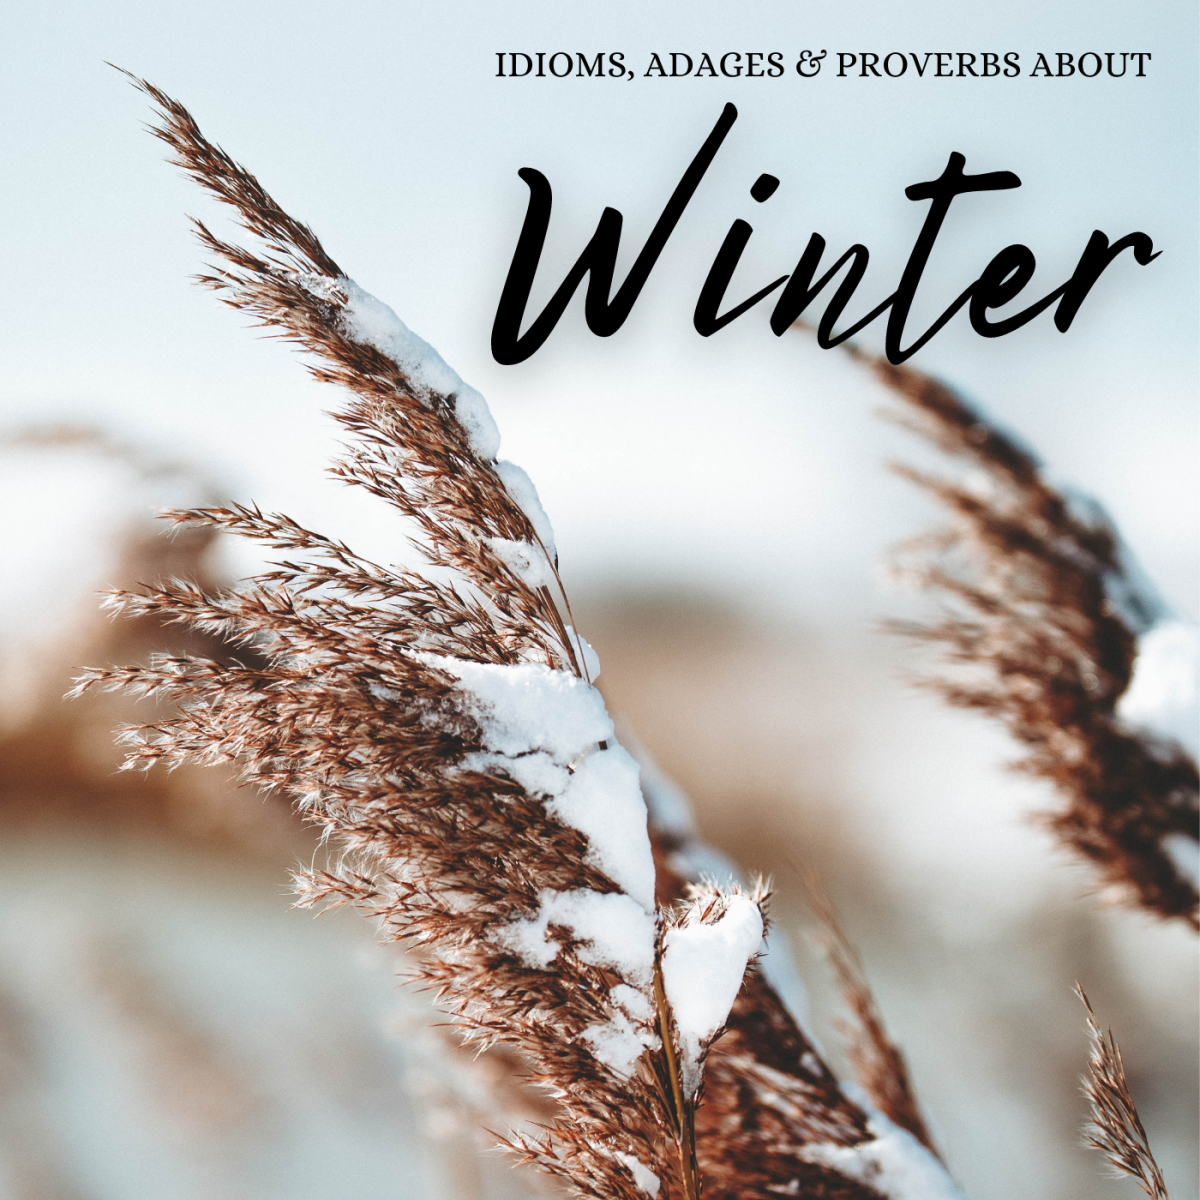 A surprising number of expressions, idioms, and turns of phrase have been created about the winter season over the years.